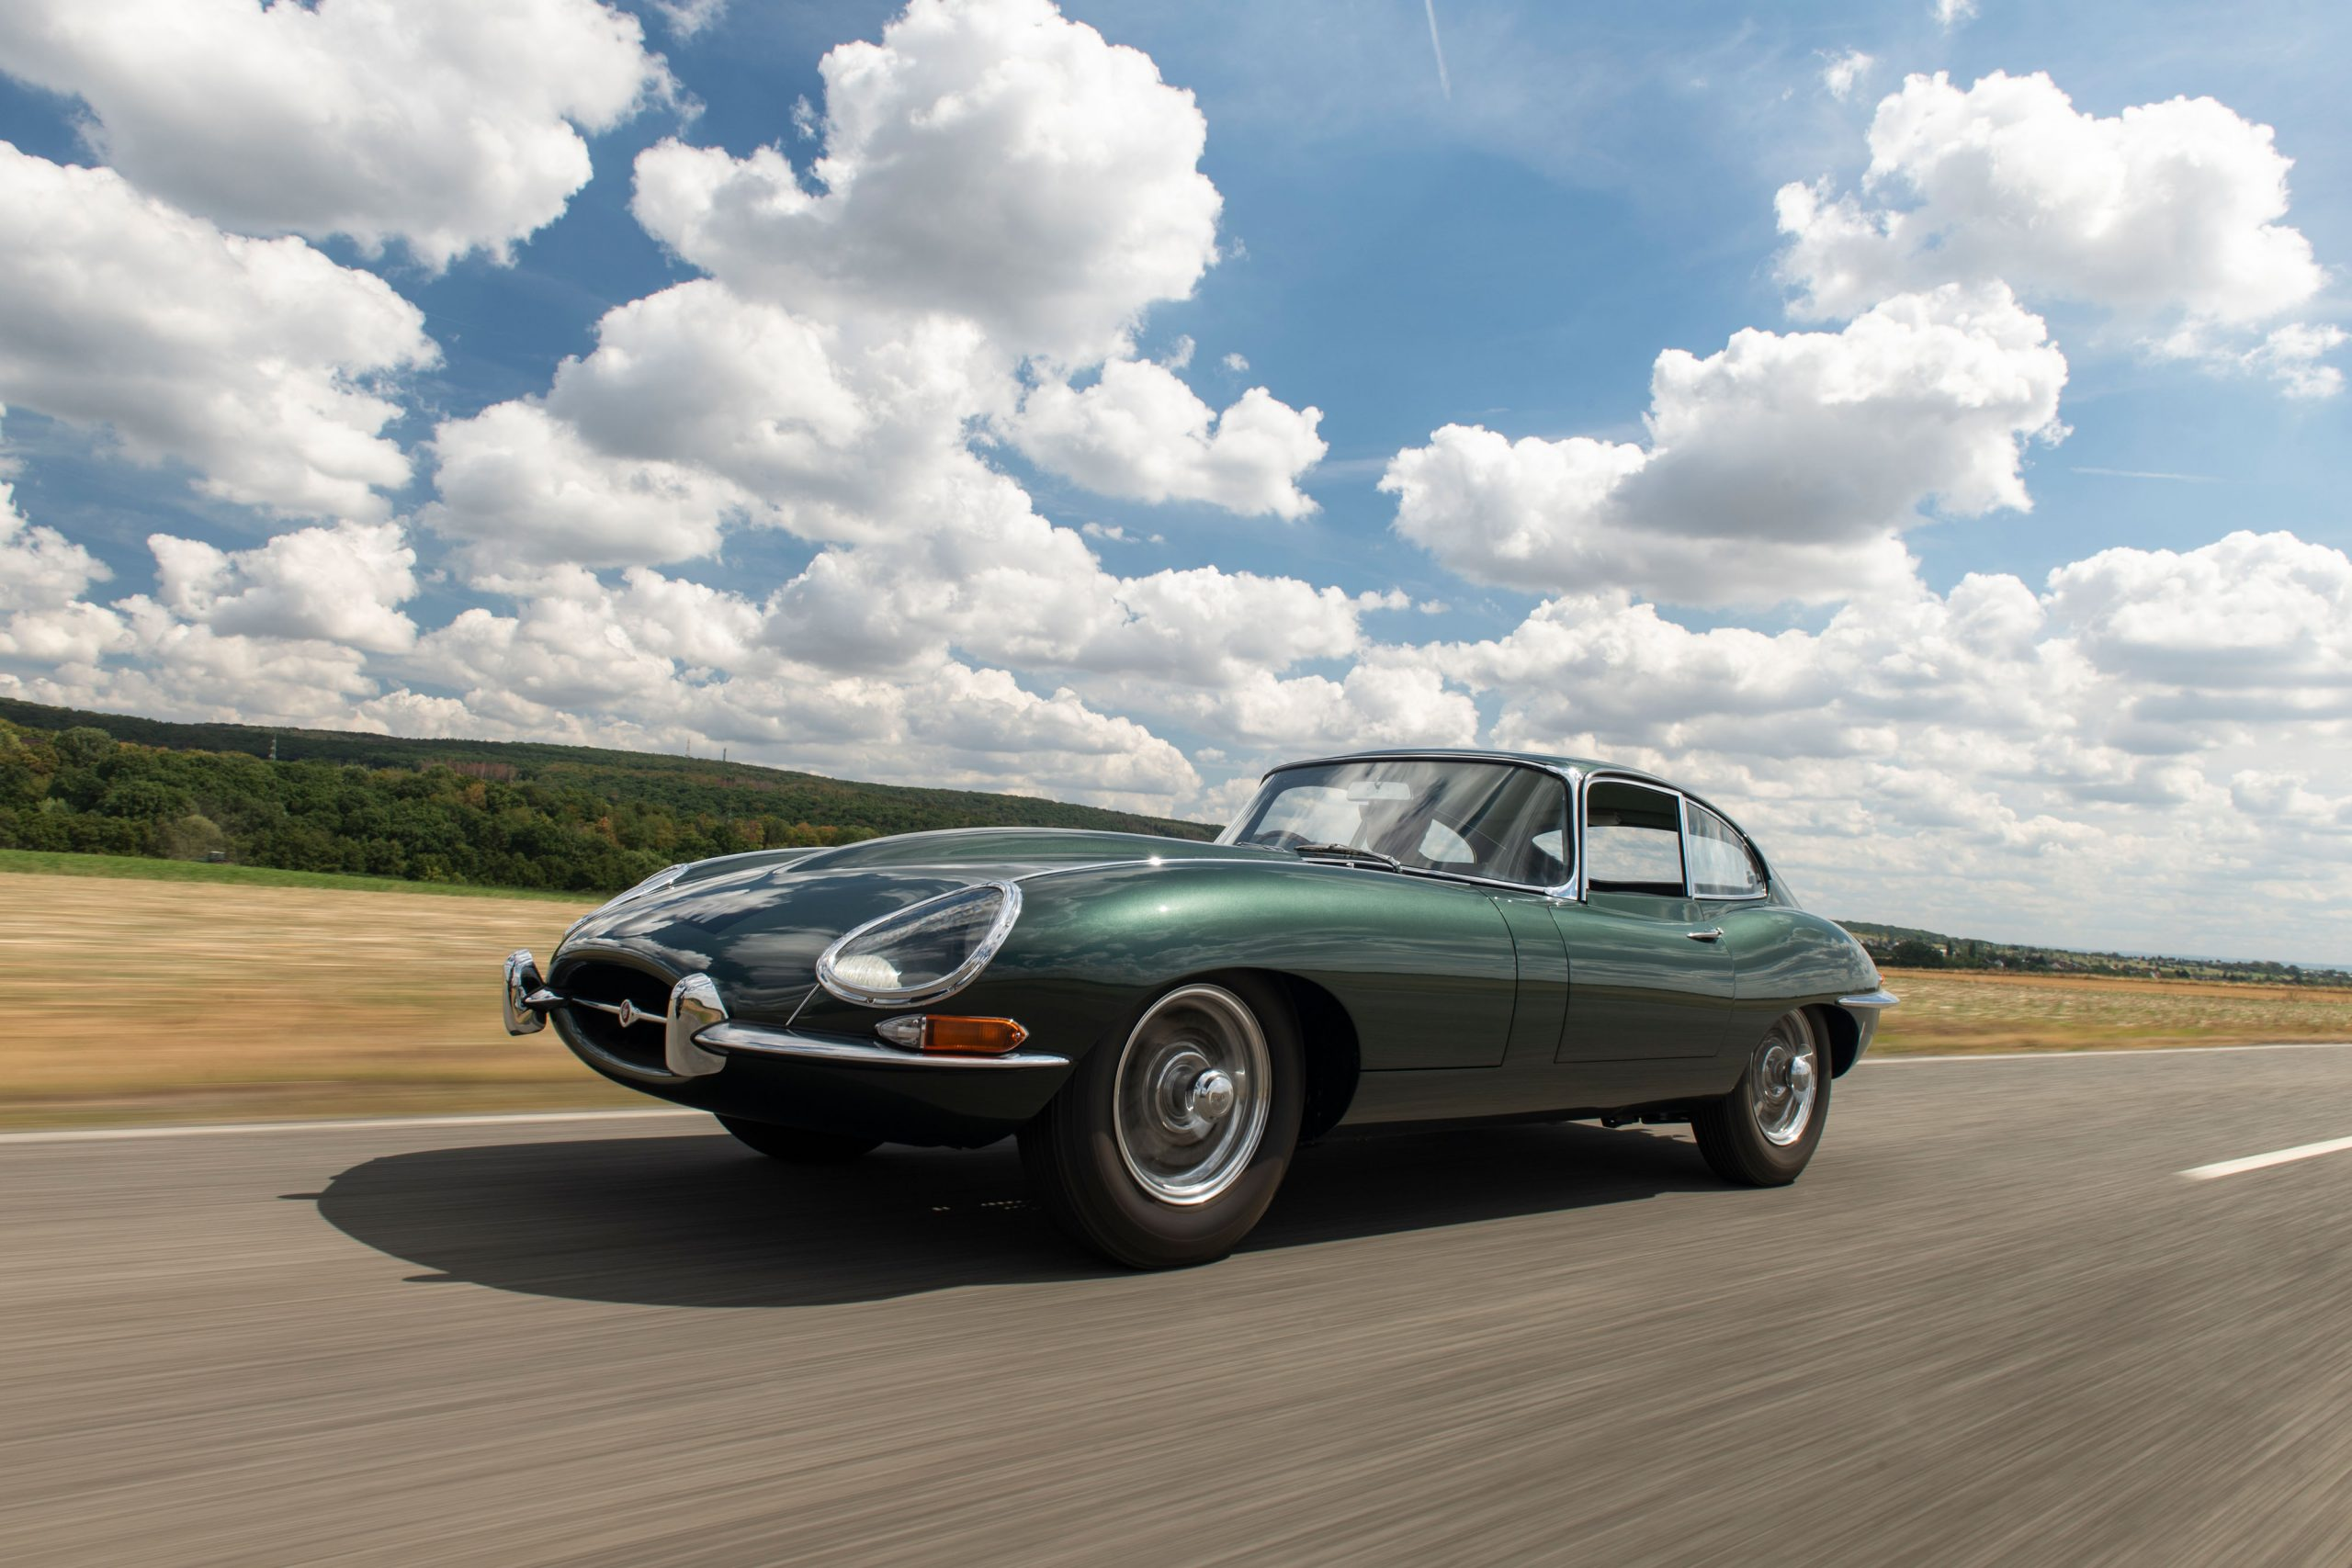 This 1961 Jaguar E-Type hides a fascinating history